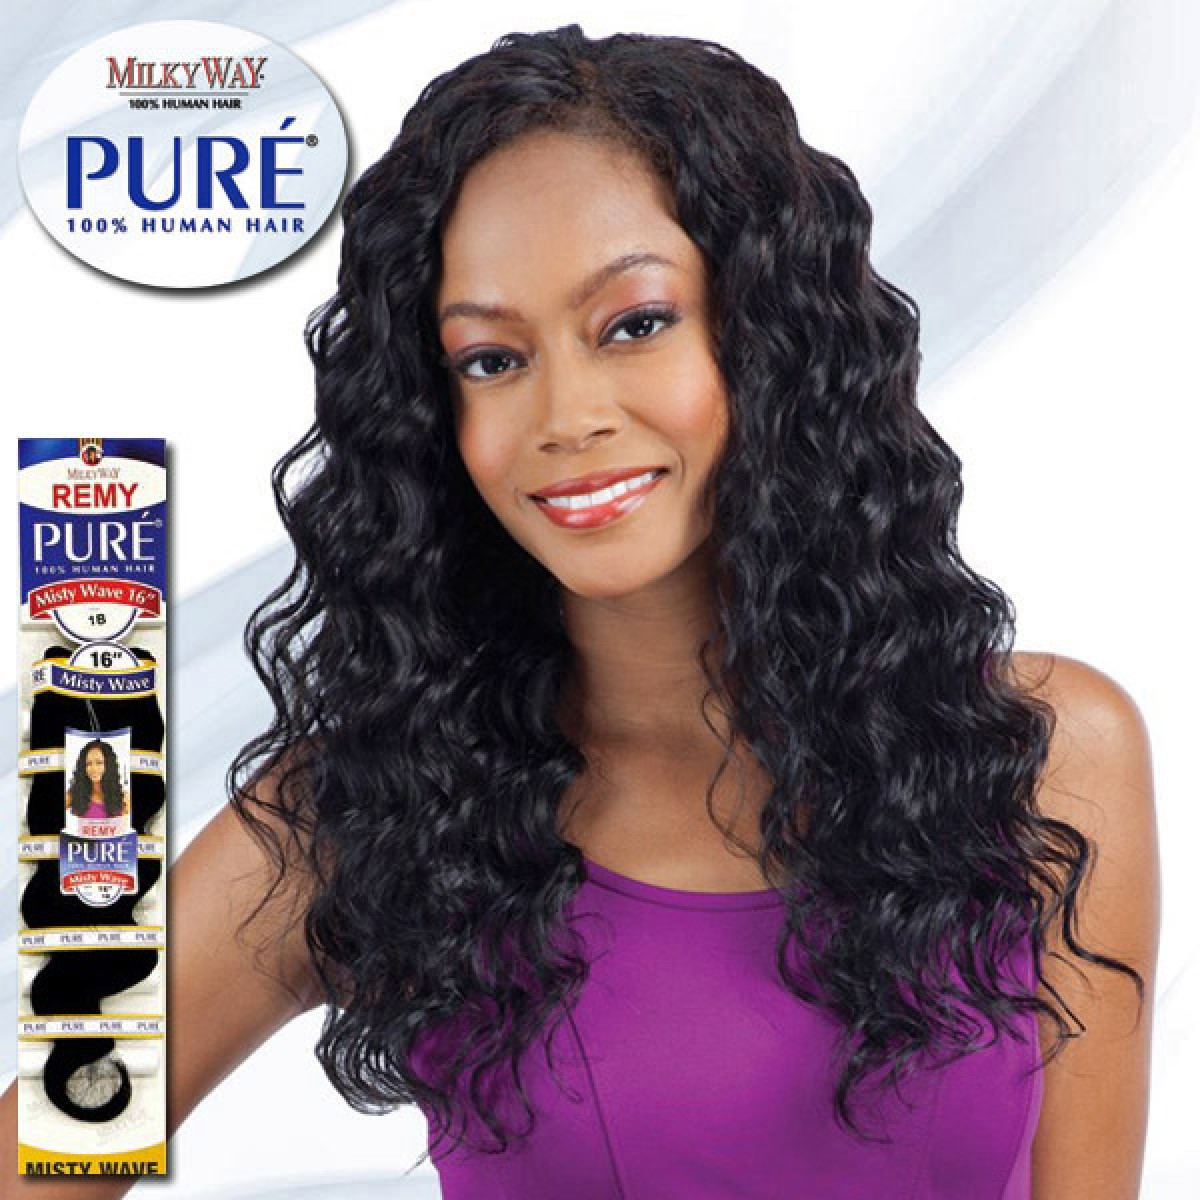 Milky Way Pure 100 Human Hair Weave Misty Wave